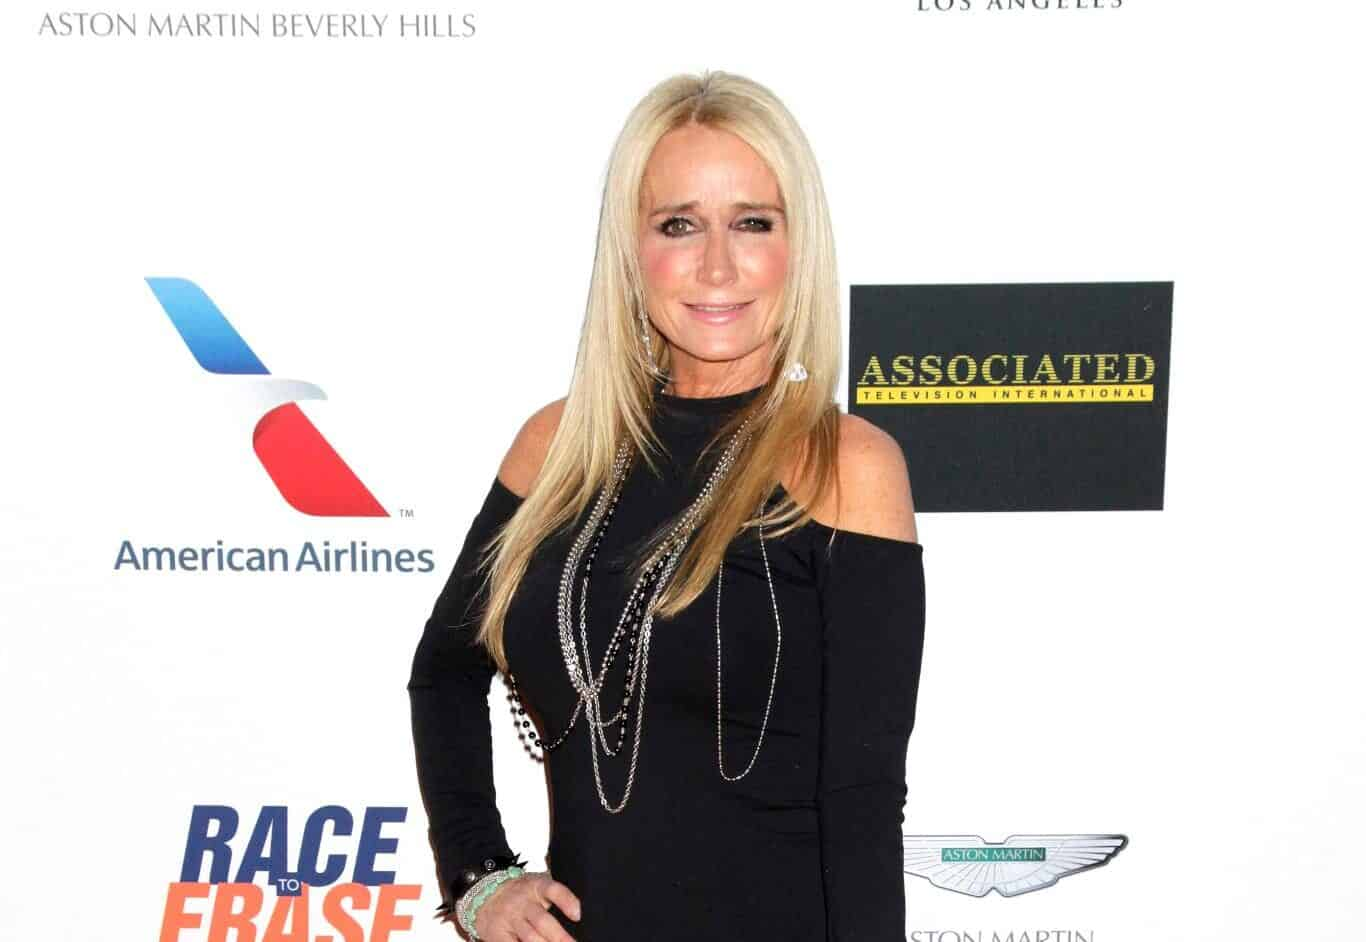 REPORT: Kim Richards' Tell-All Memoir is Cancelled by Publisher But RHOBH Alum Will Get to Keep $300,000 Advance